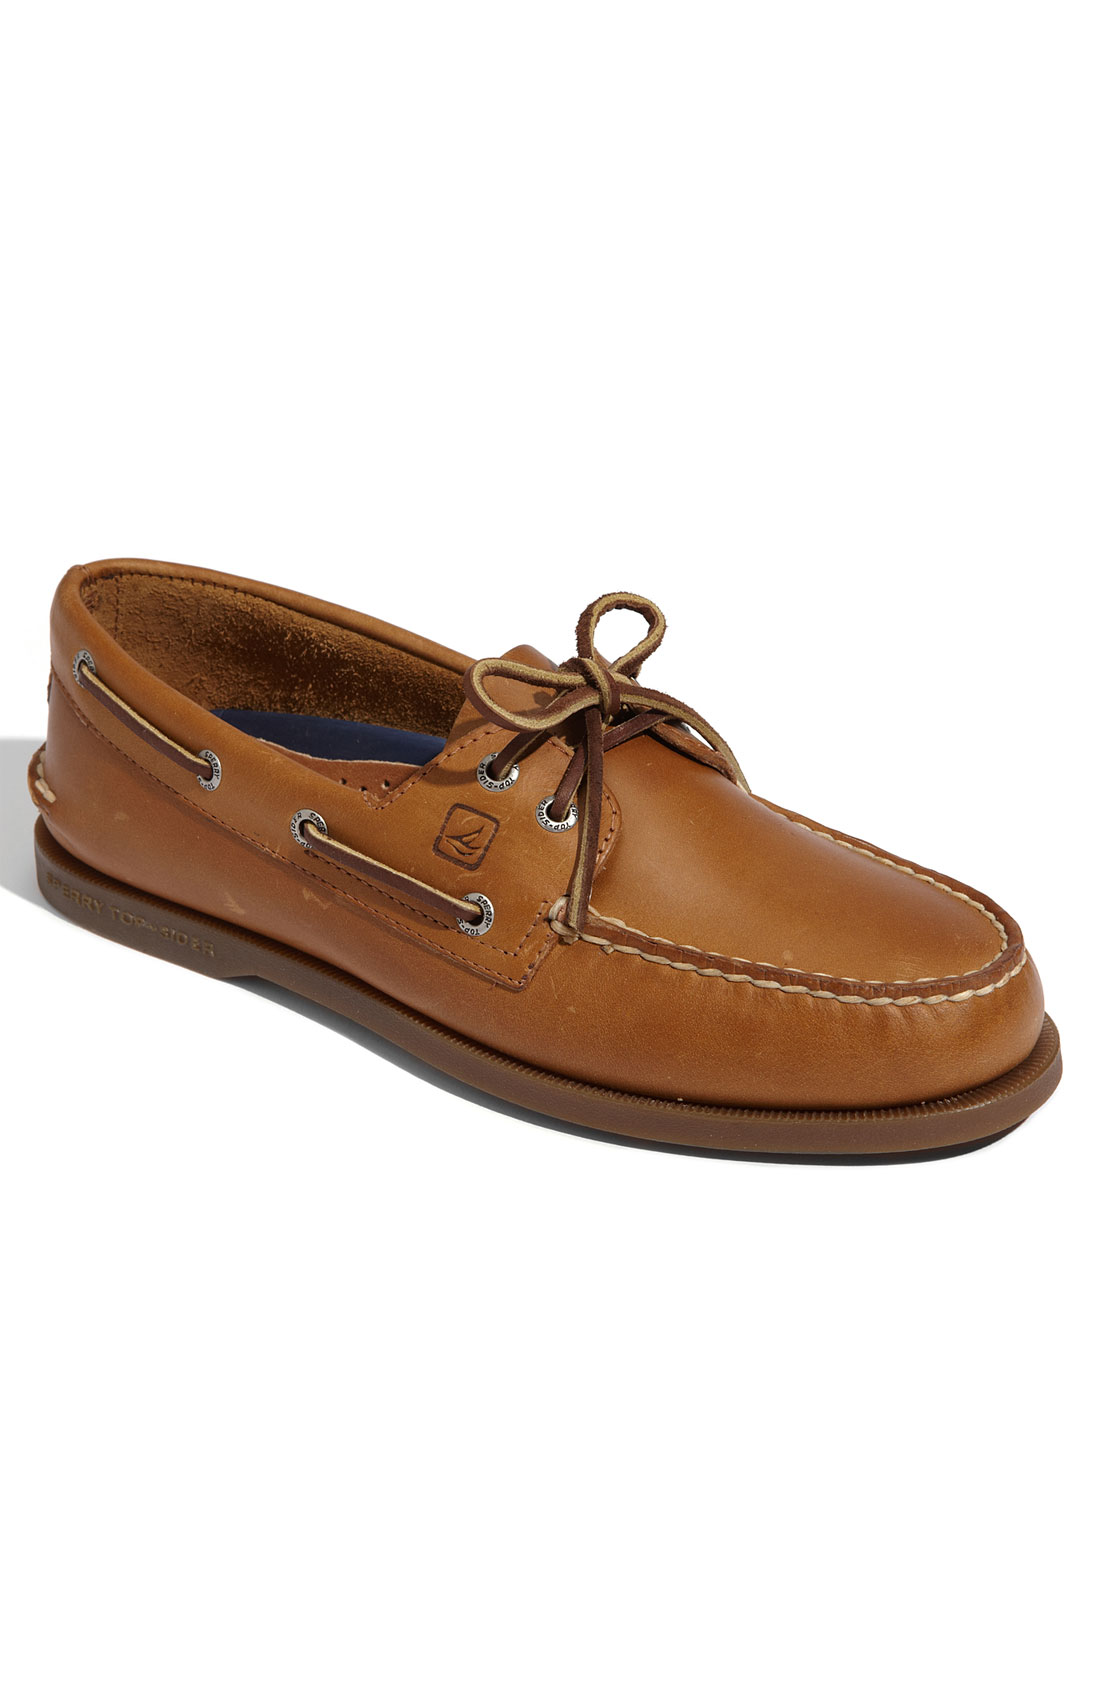 Sperry topsider Authentic Original Boat Shoe in Brown for Men sahara